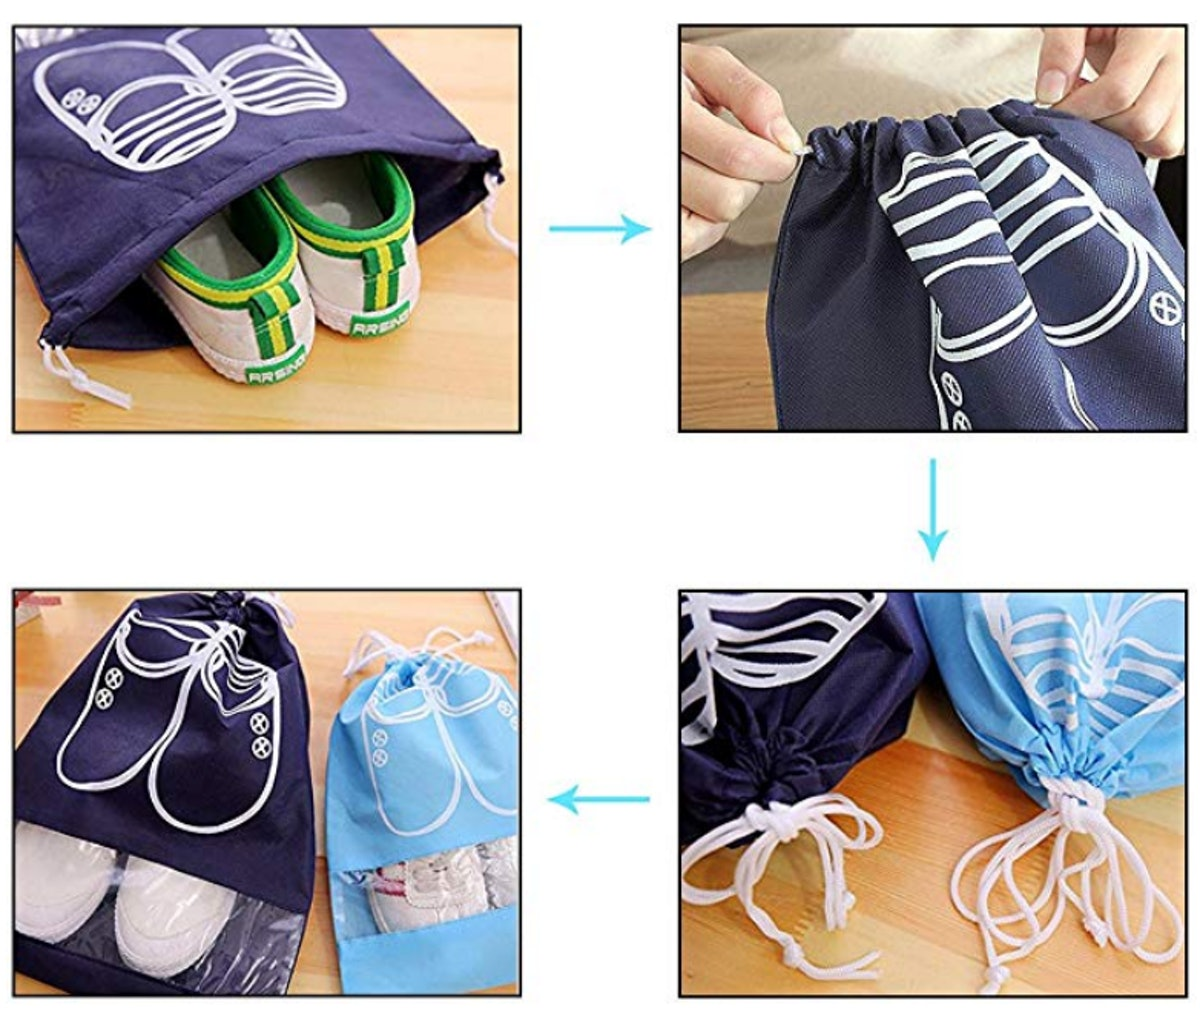 SPIKG Portable Travel Shoe Bags (10-Pack)